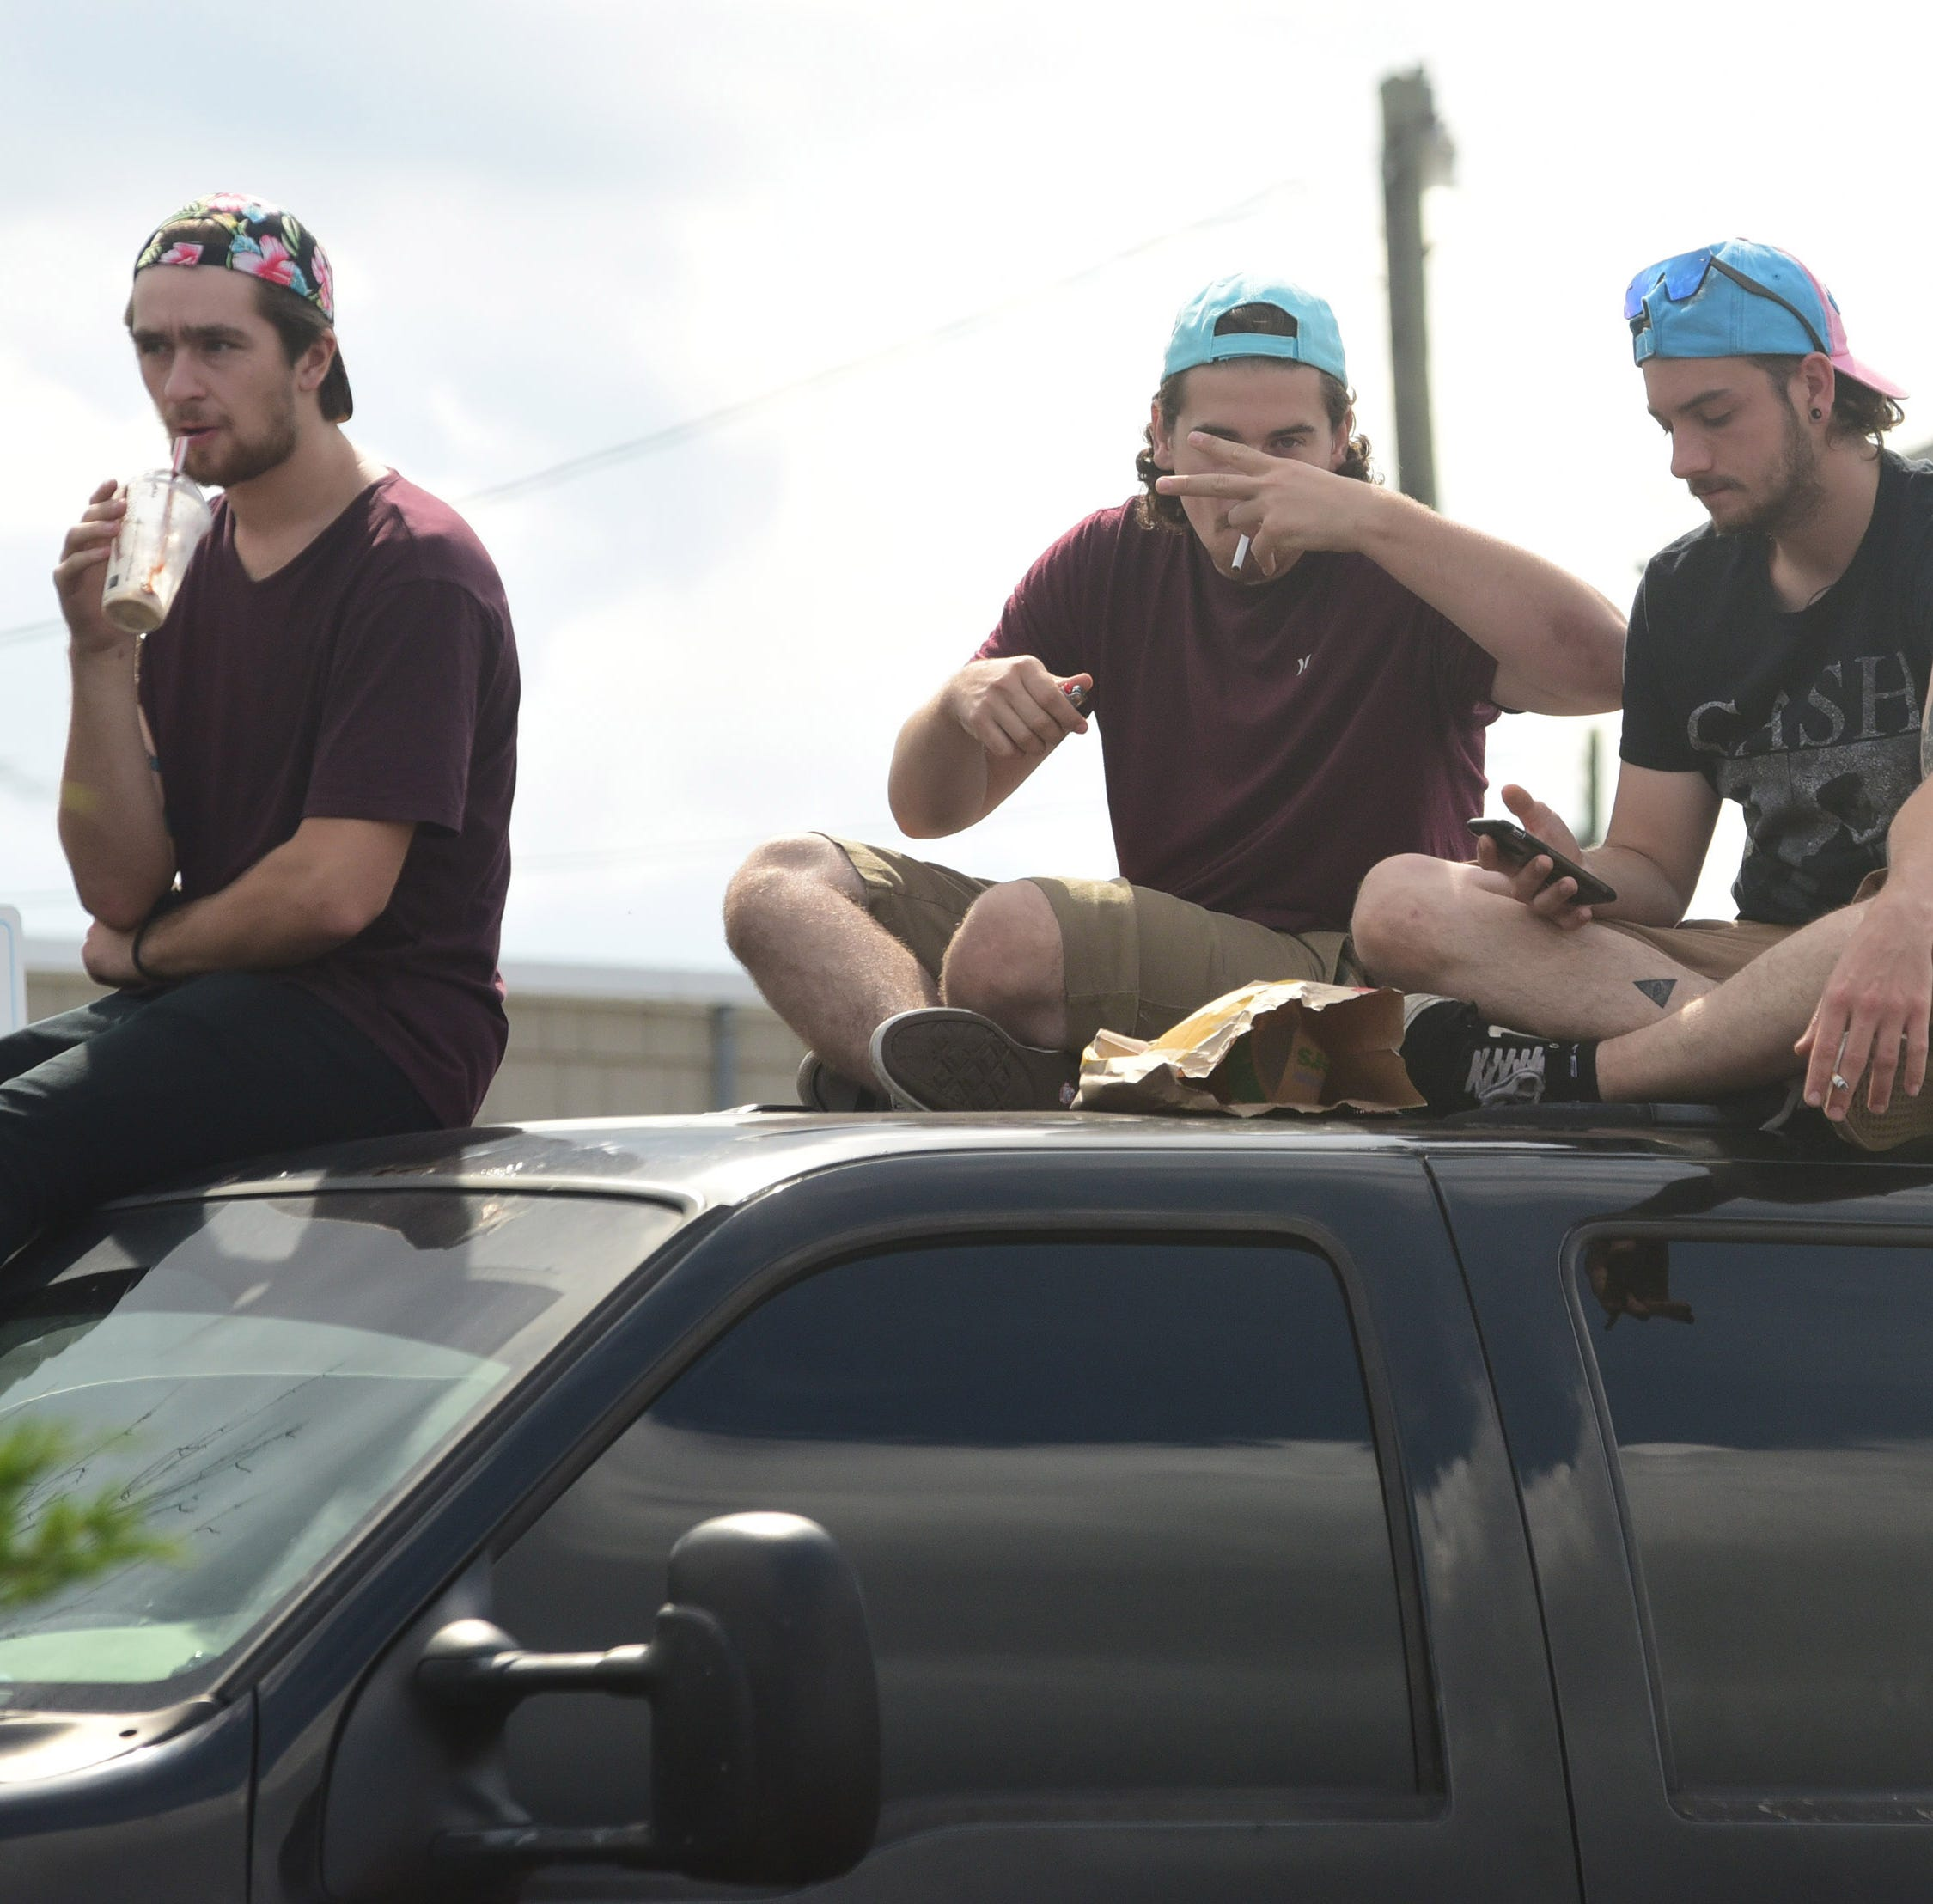 In Ocean City, persistence of unofficial H2Oi enthusiasts creates dilemma: Editorial